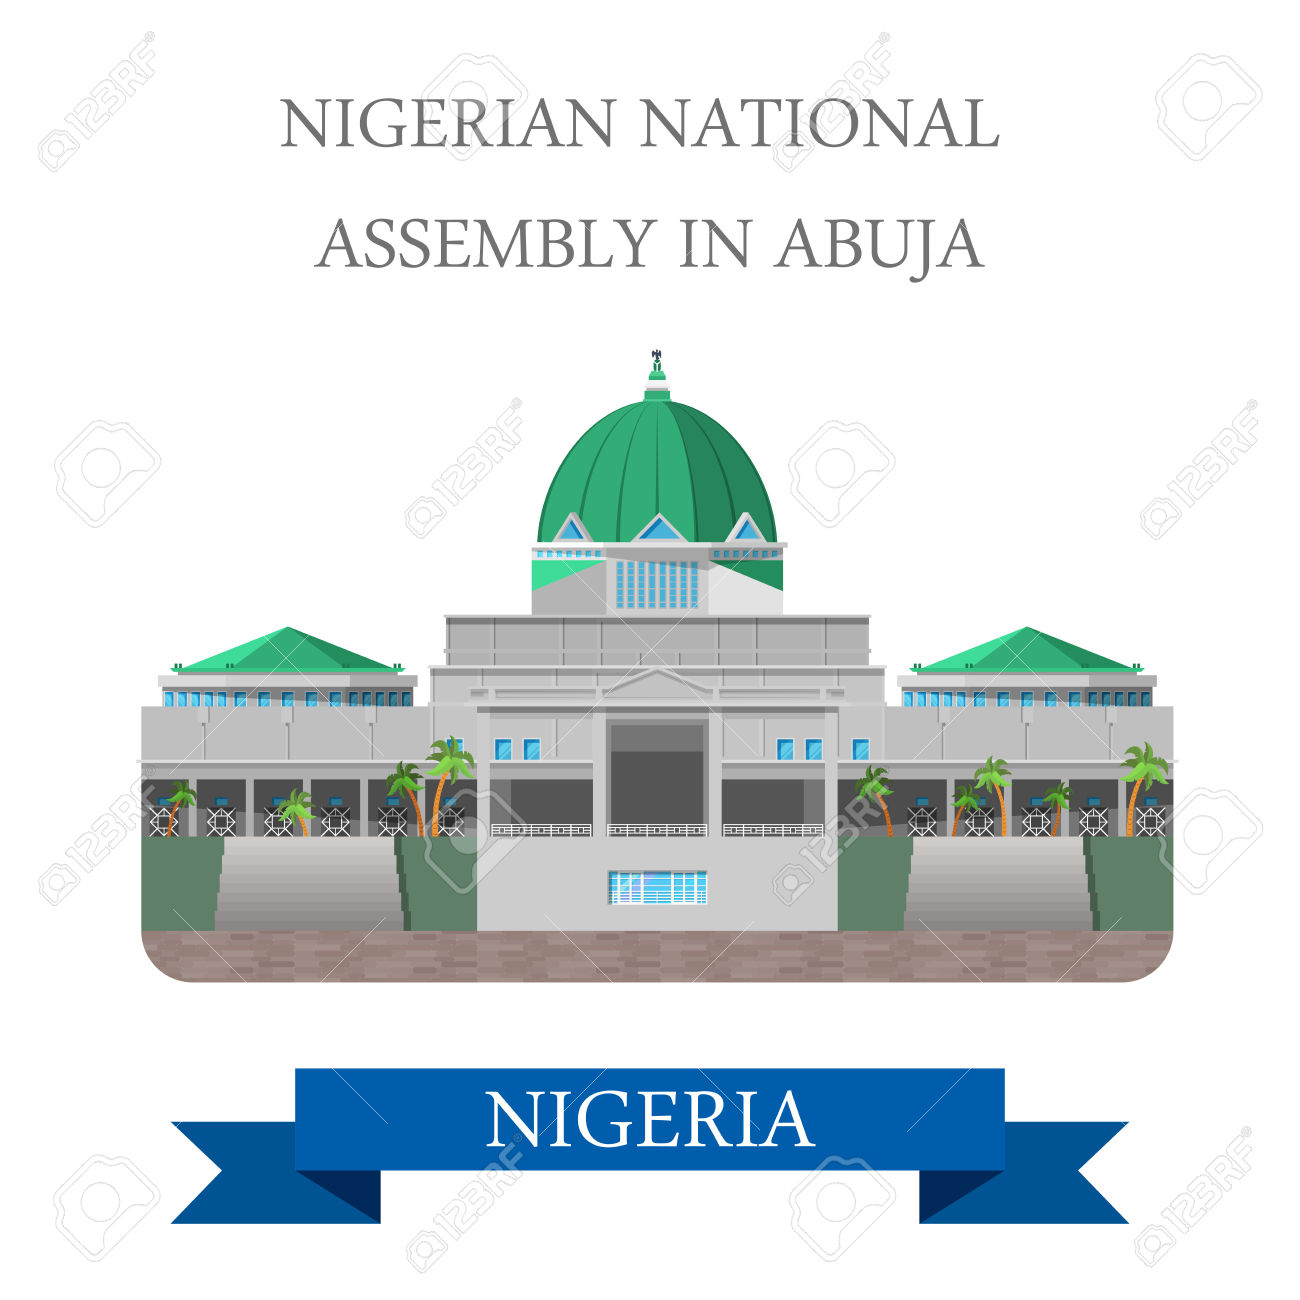 National Assembly Of Nigeria In Abuja. Flat Cartoon Style Historic.